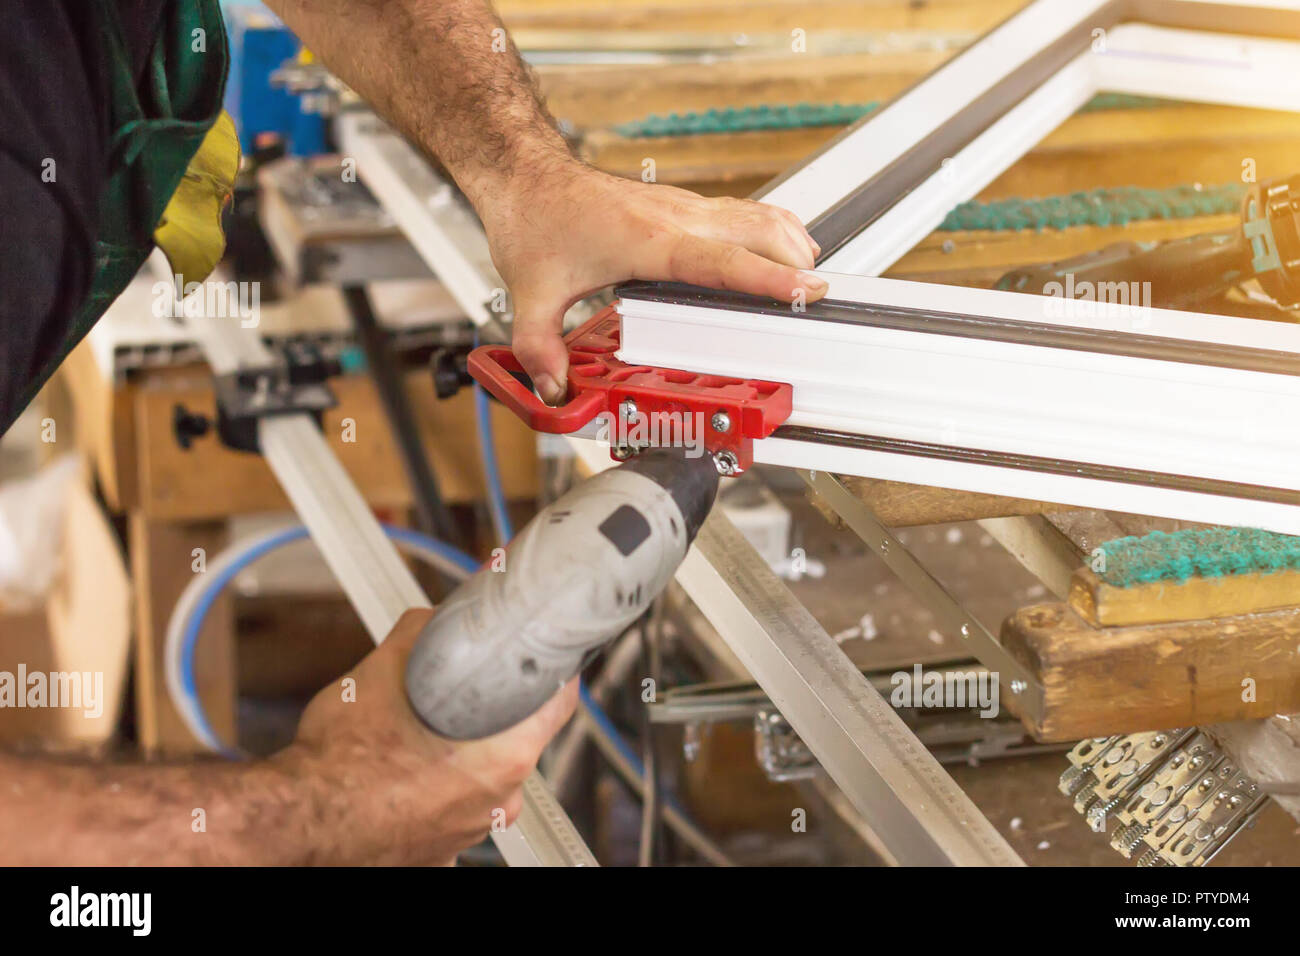 Production of pvc windows, a man screws a screwdriver into a pvc window, close-up, windows pvc - Stock Image